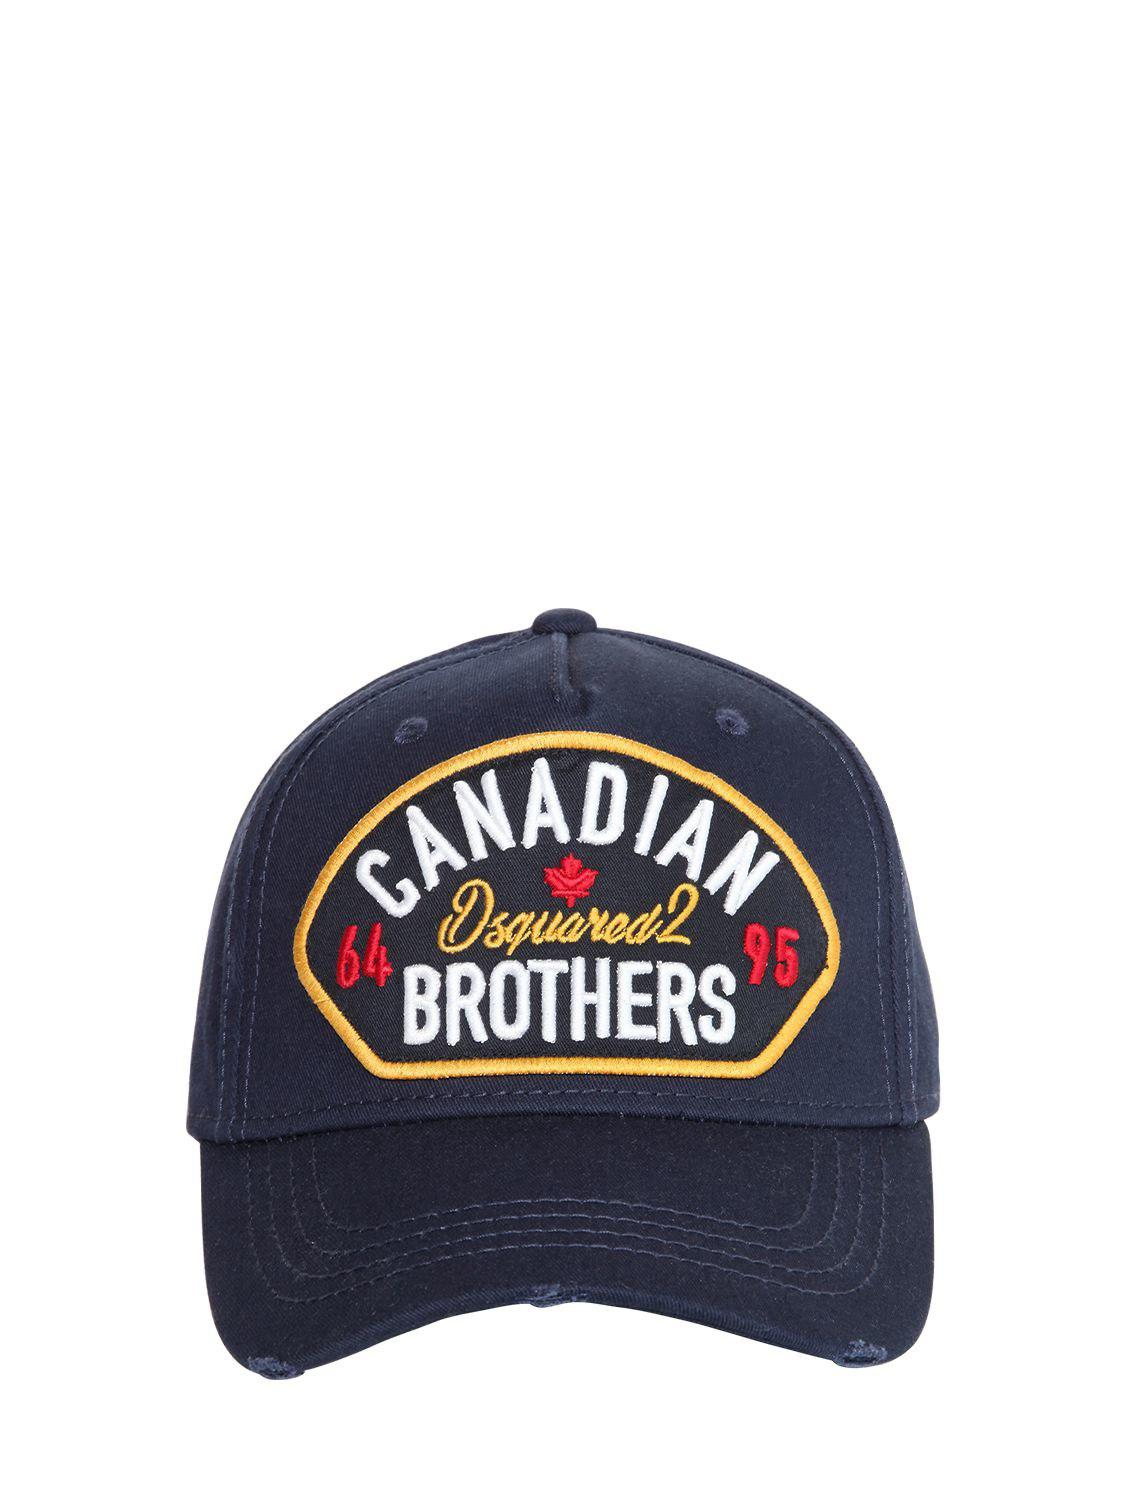 275496ed510 Lyst - Dsquared² Canadian Brothers Patch Baseball Hat in Blue for Men